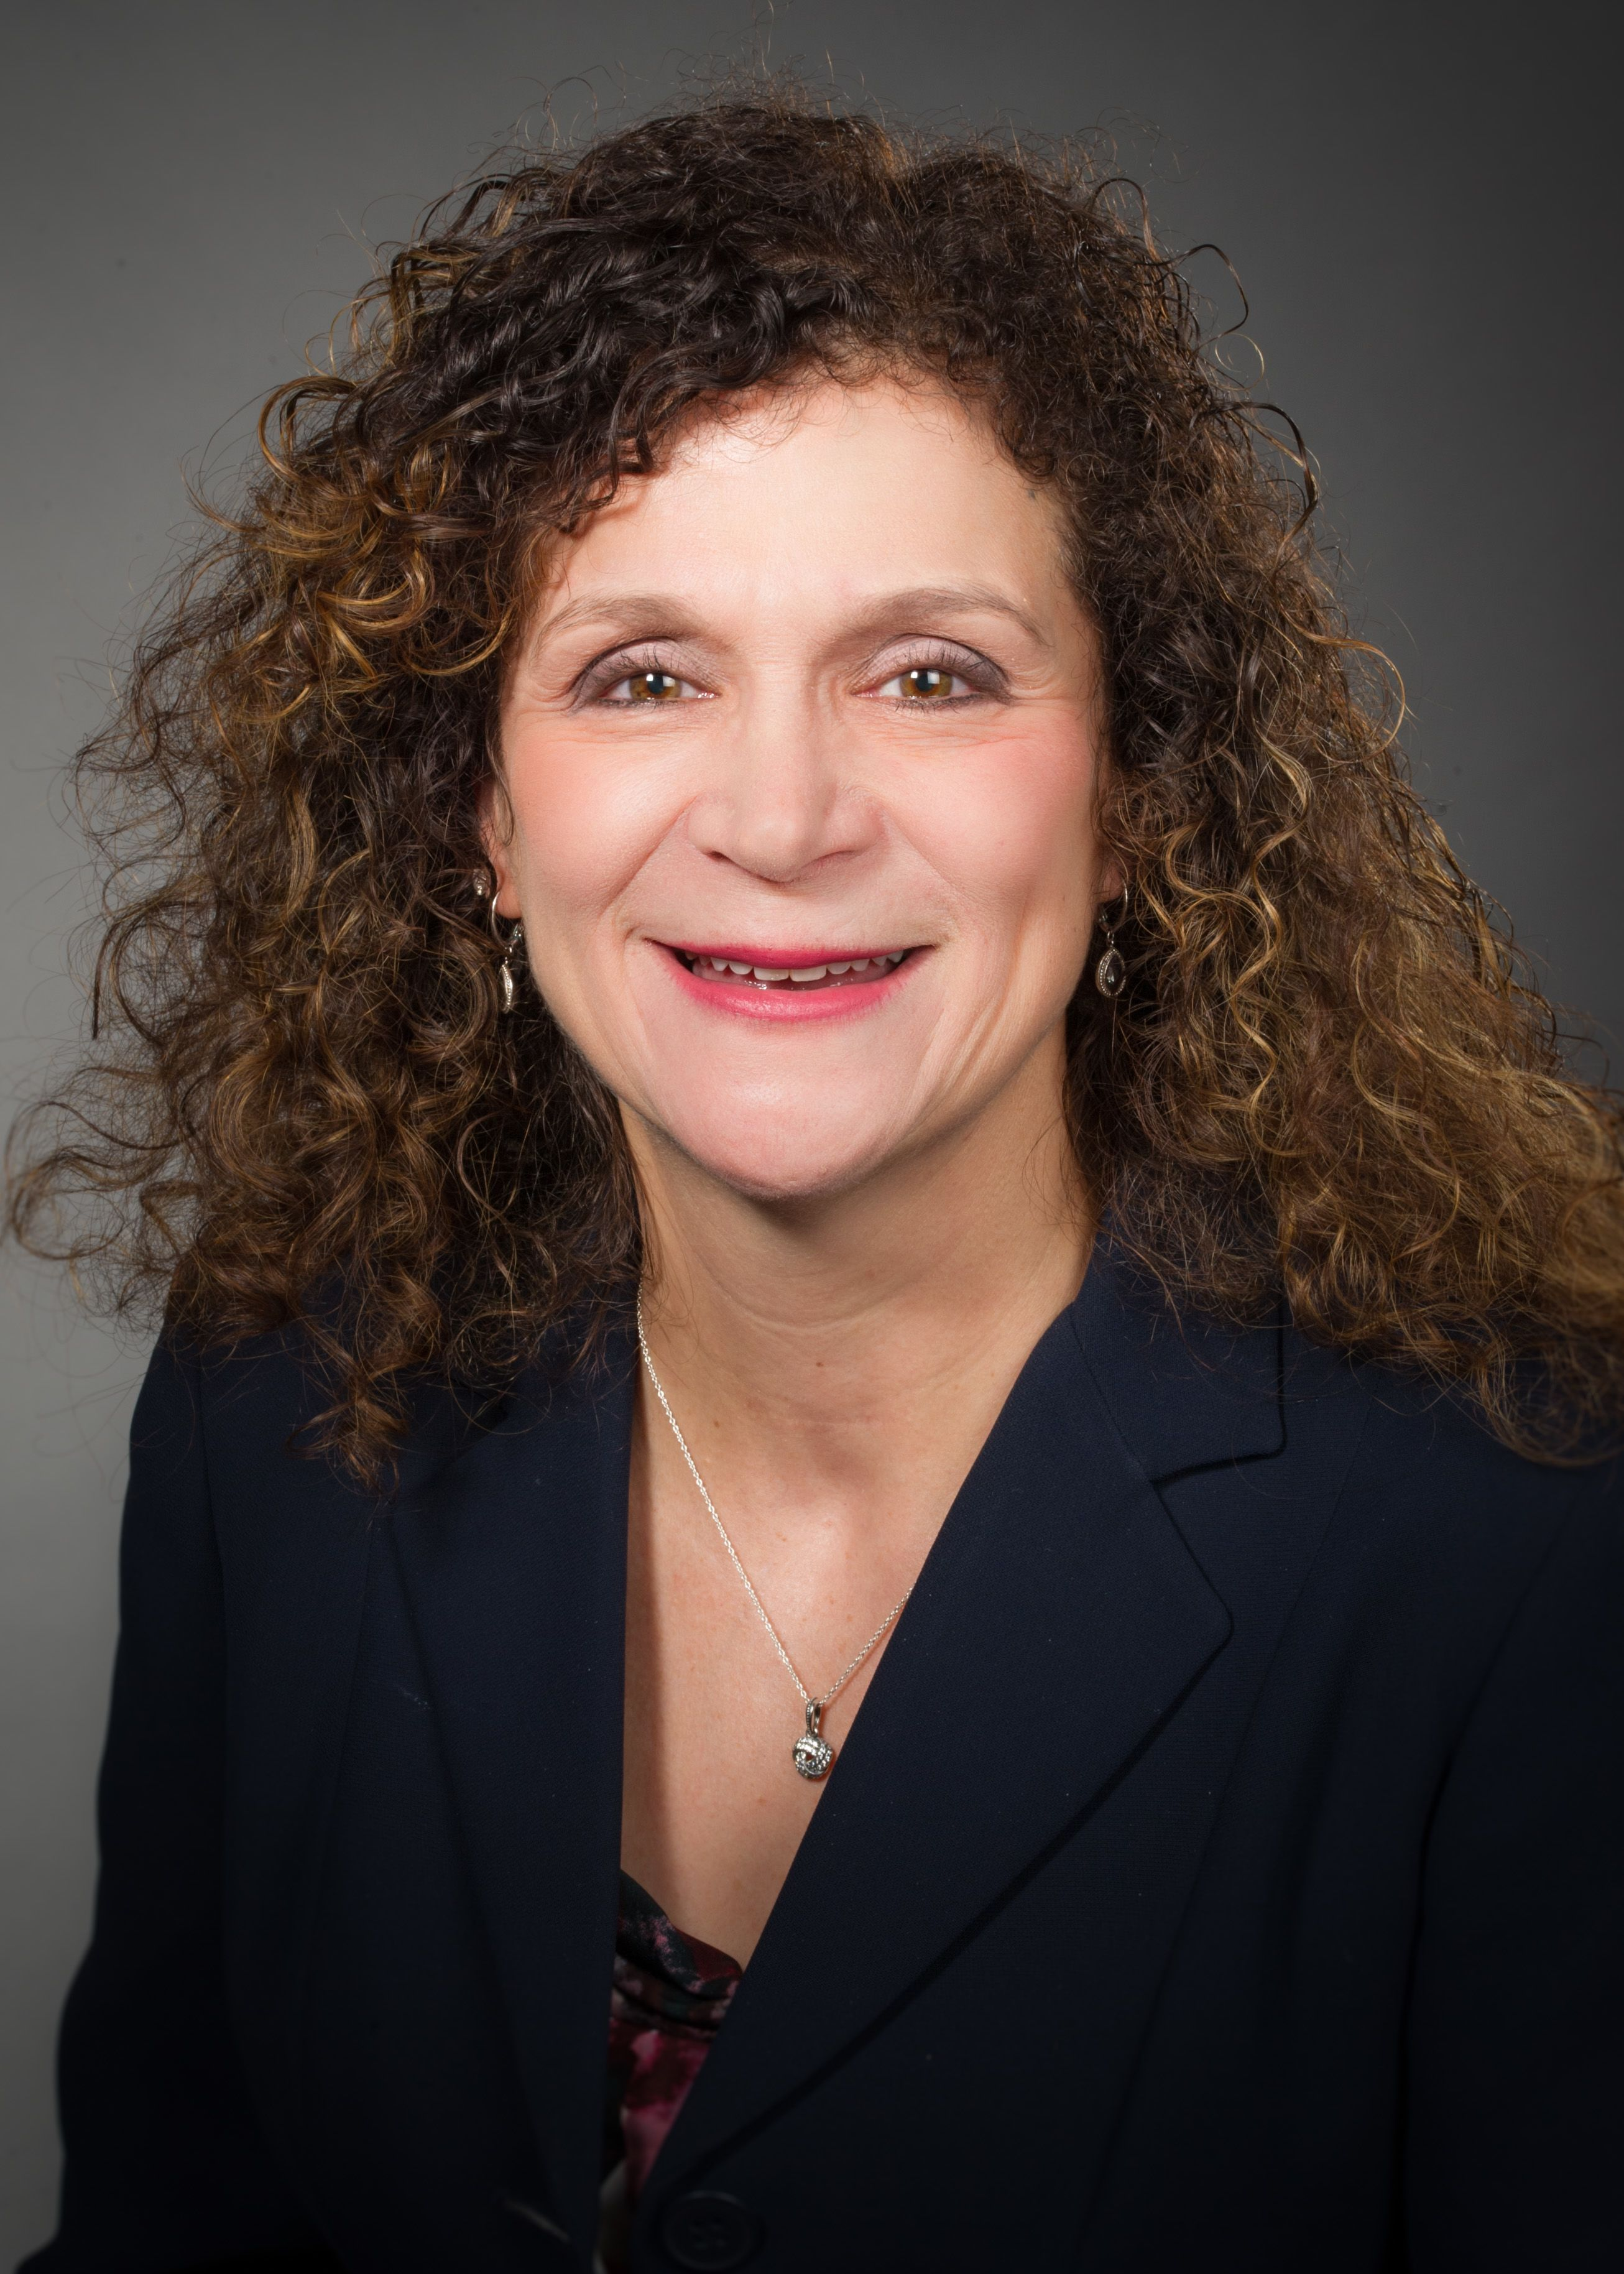 Lori Ann Attivissimo, MD, wearing a black suit jacket